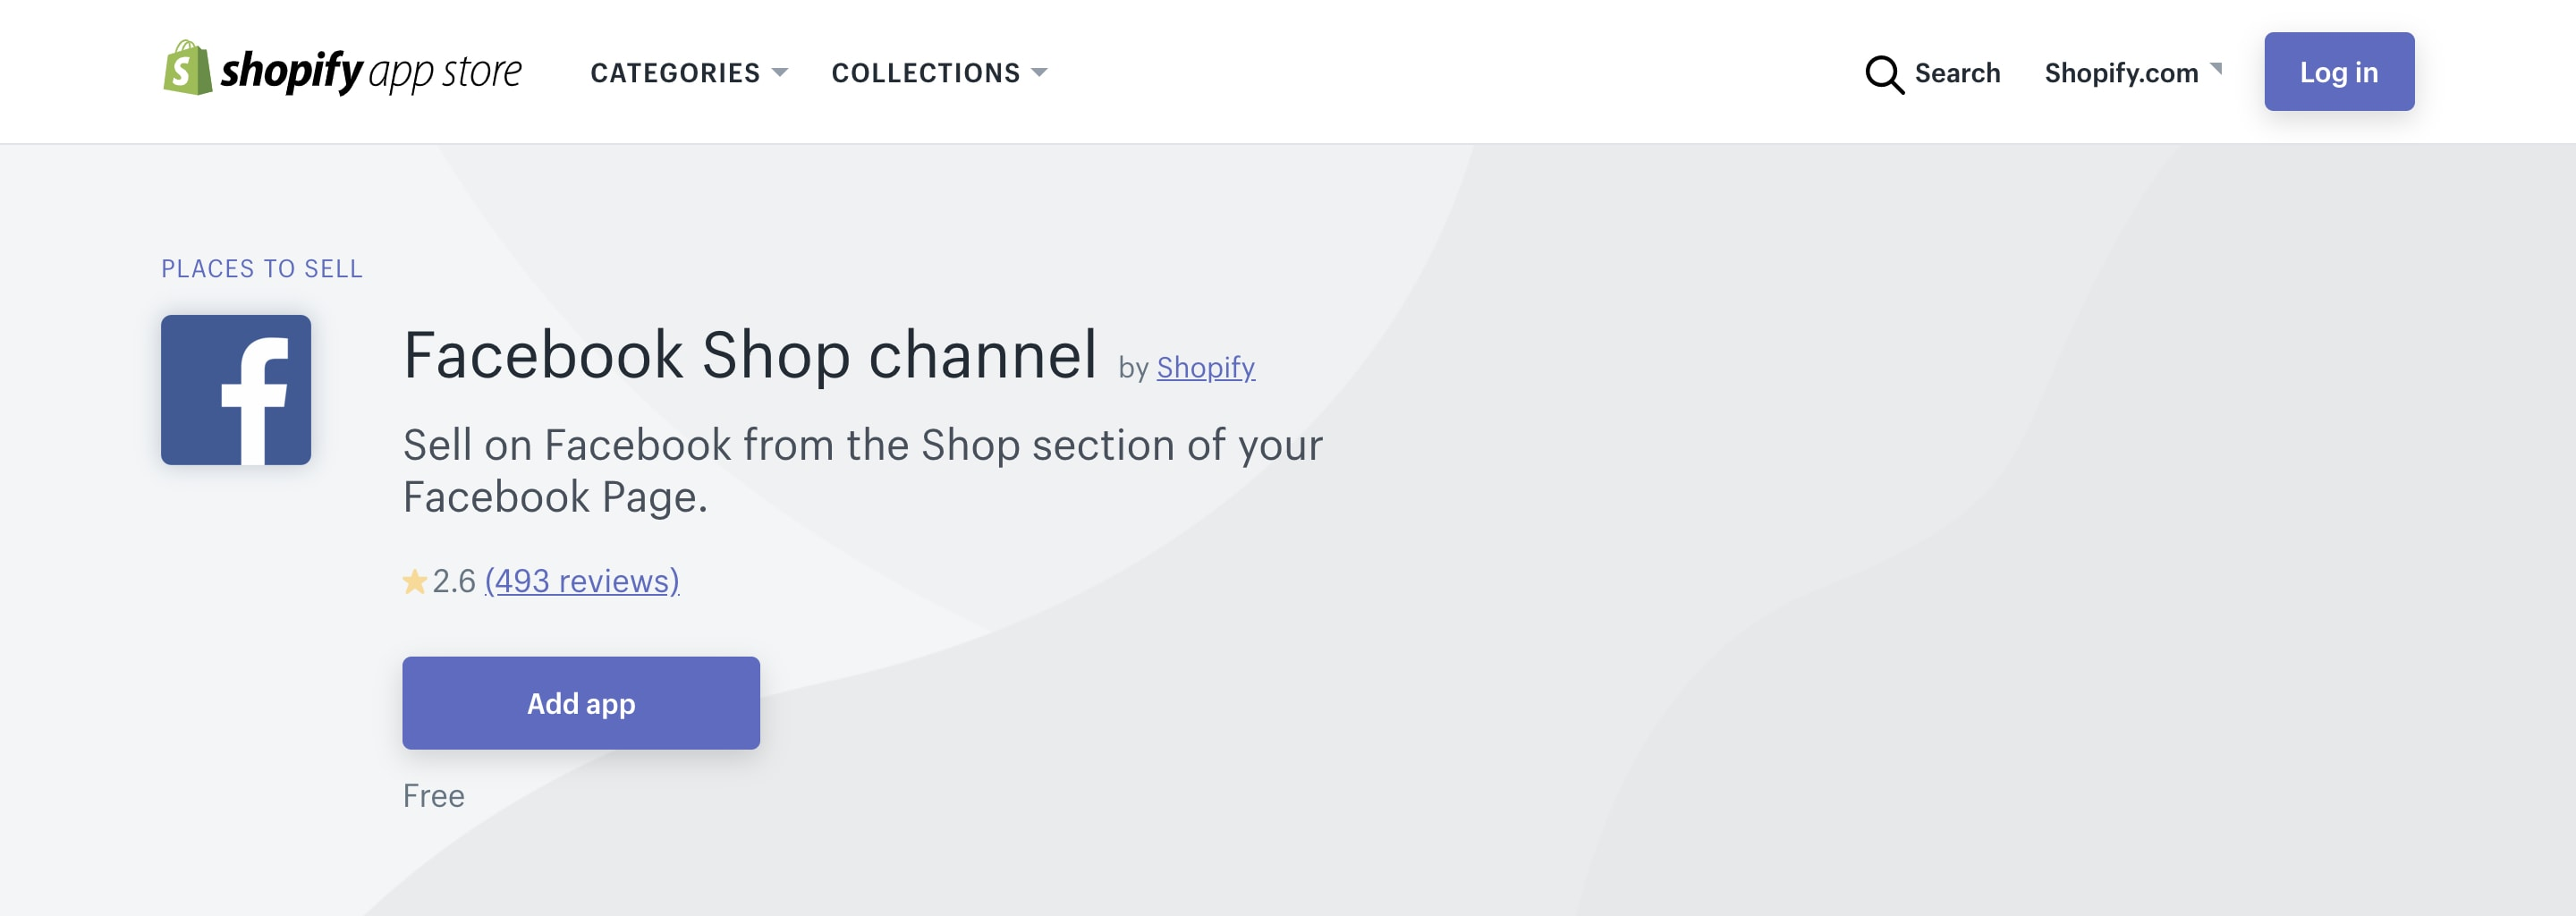 Shopify Facebook Shop channel.